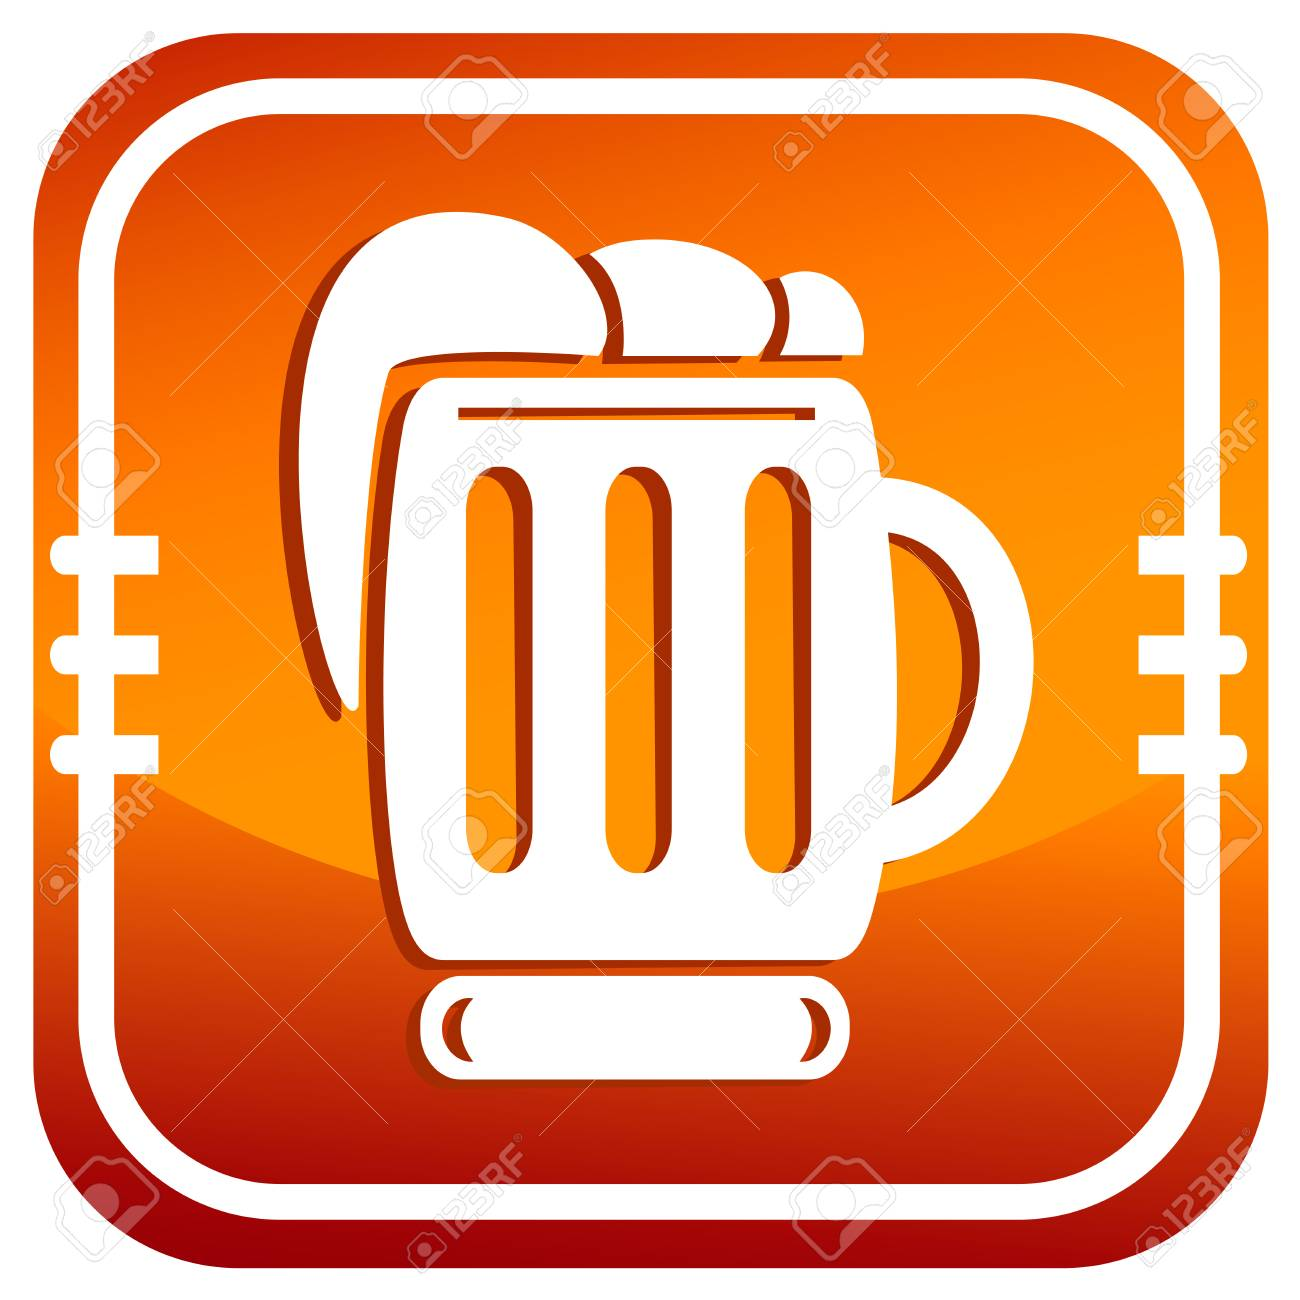 Beer icon Stock Vector - 25179828